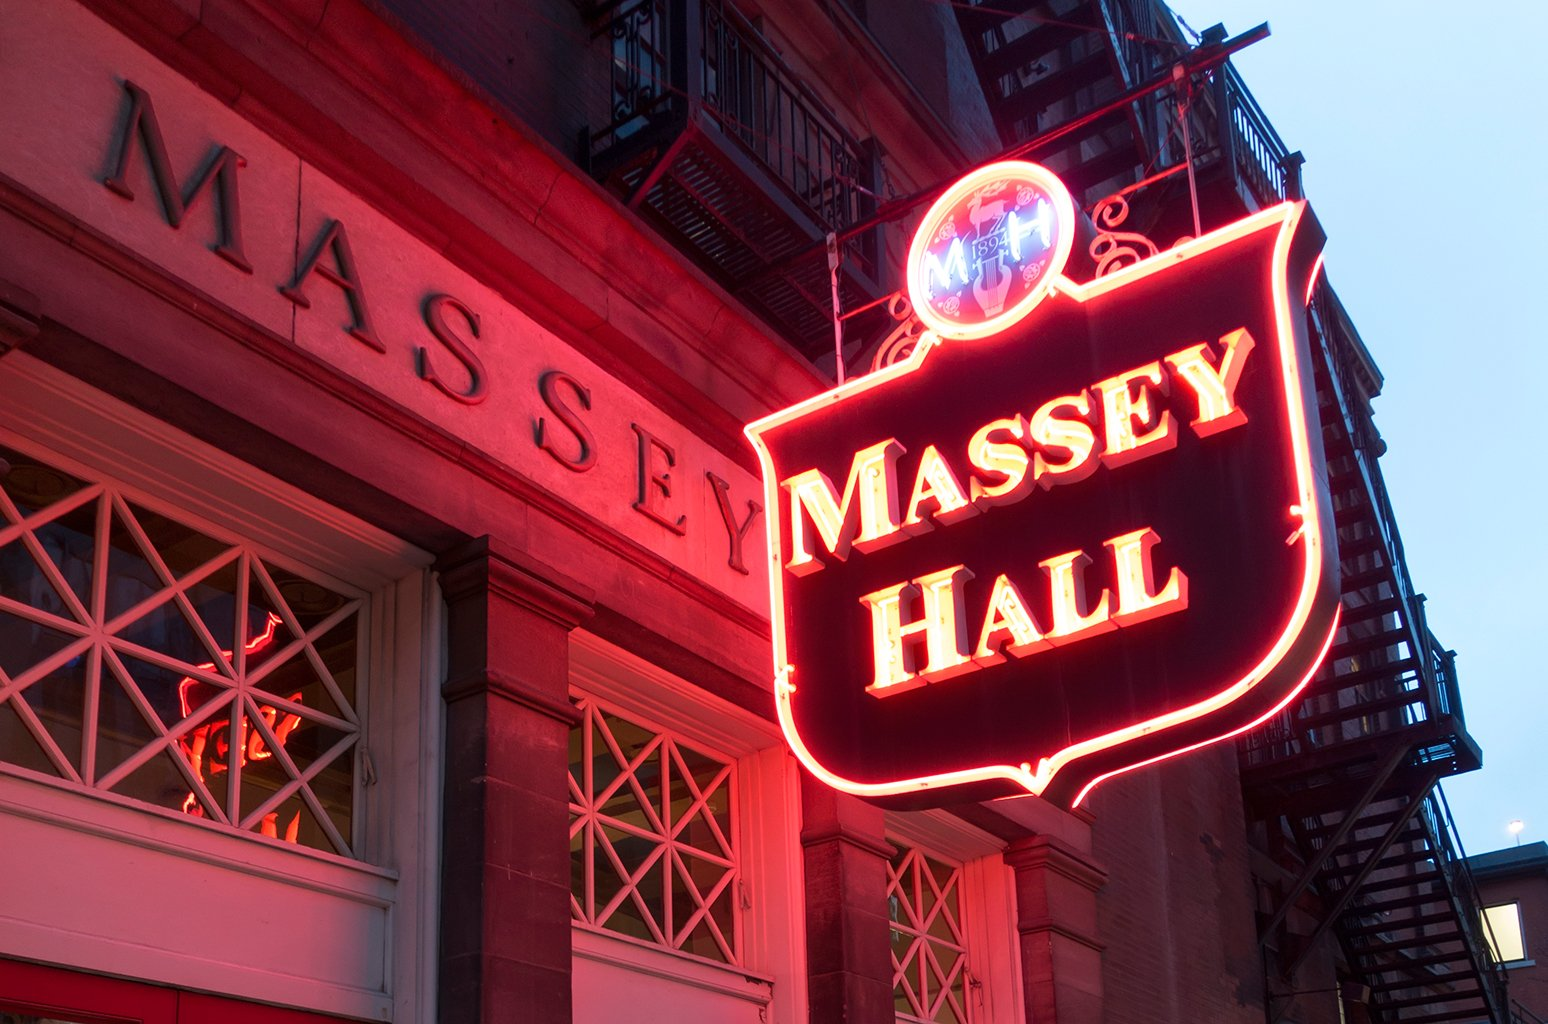 Toronto's historic Massey Hall receives $47M grant for revitalization project https://t.co/UQpEvekaBO https://t.co/CqxWYWp8dd